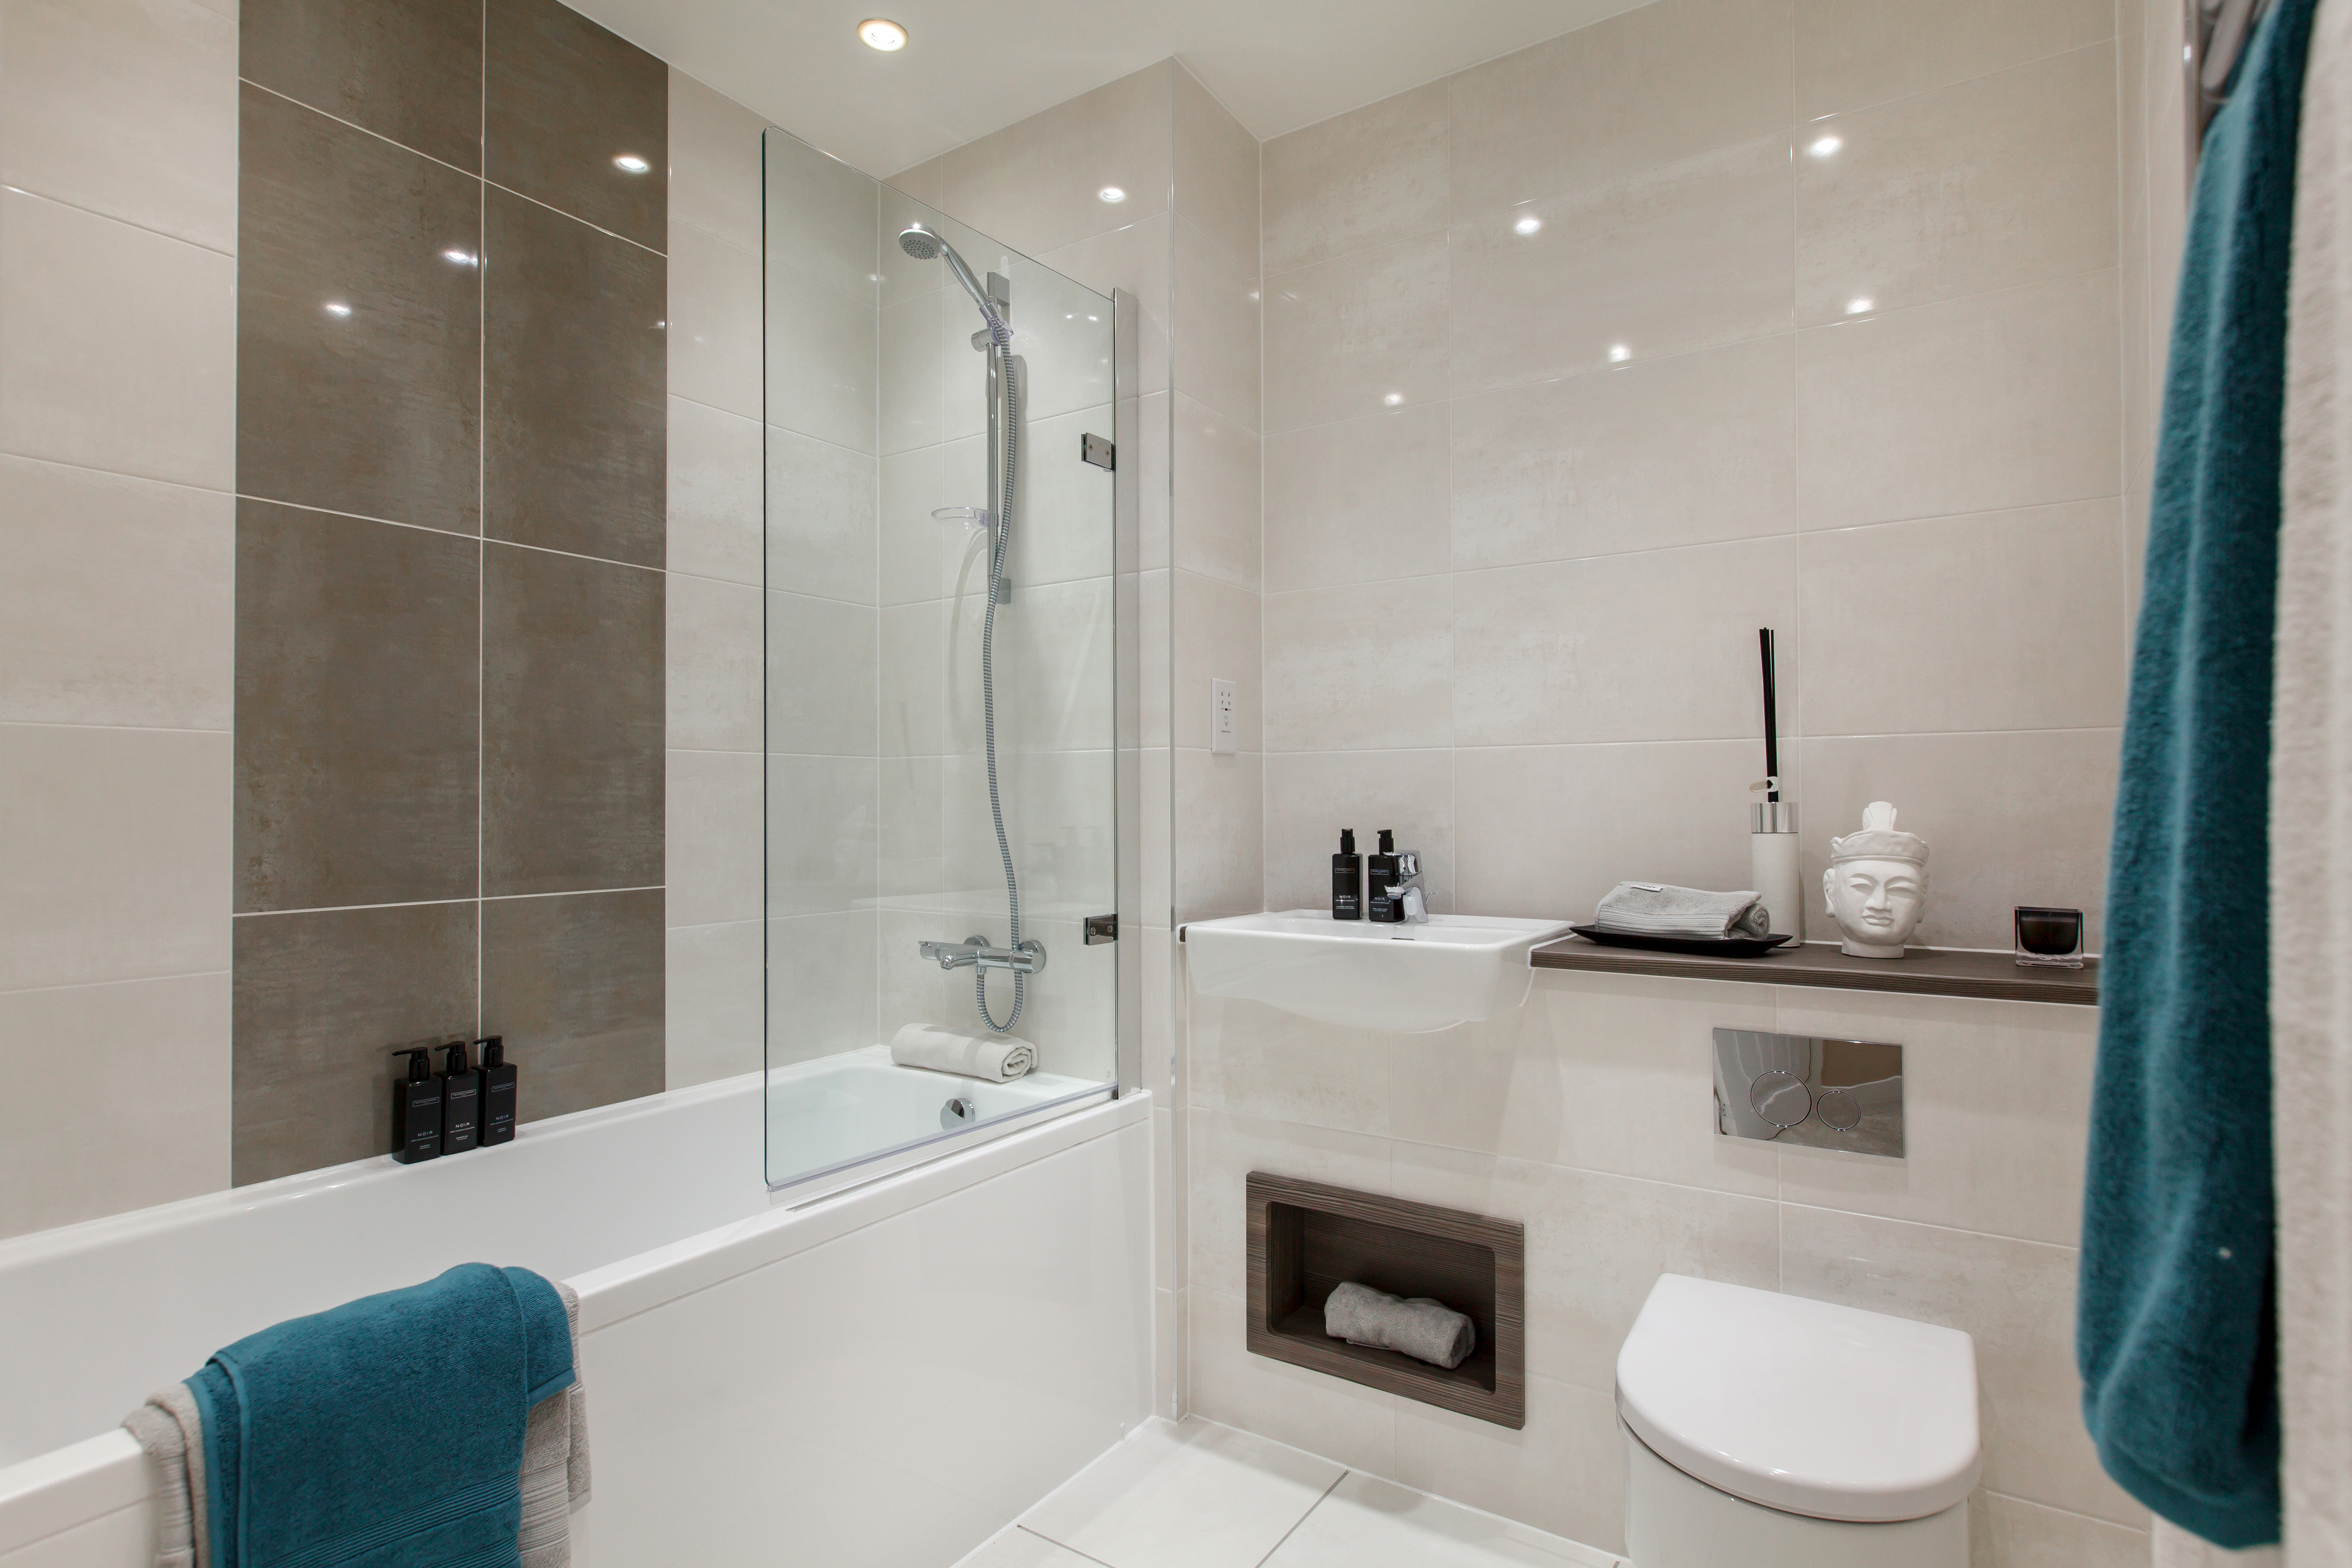 TW_NT_Millbrook Park_2 Bed Apartment_Bathroom_1